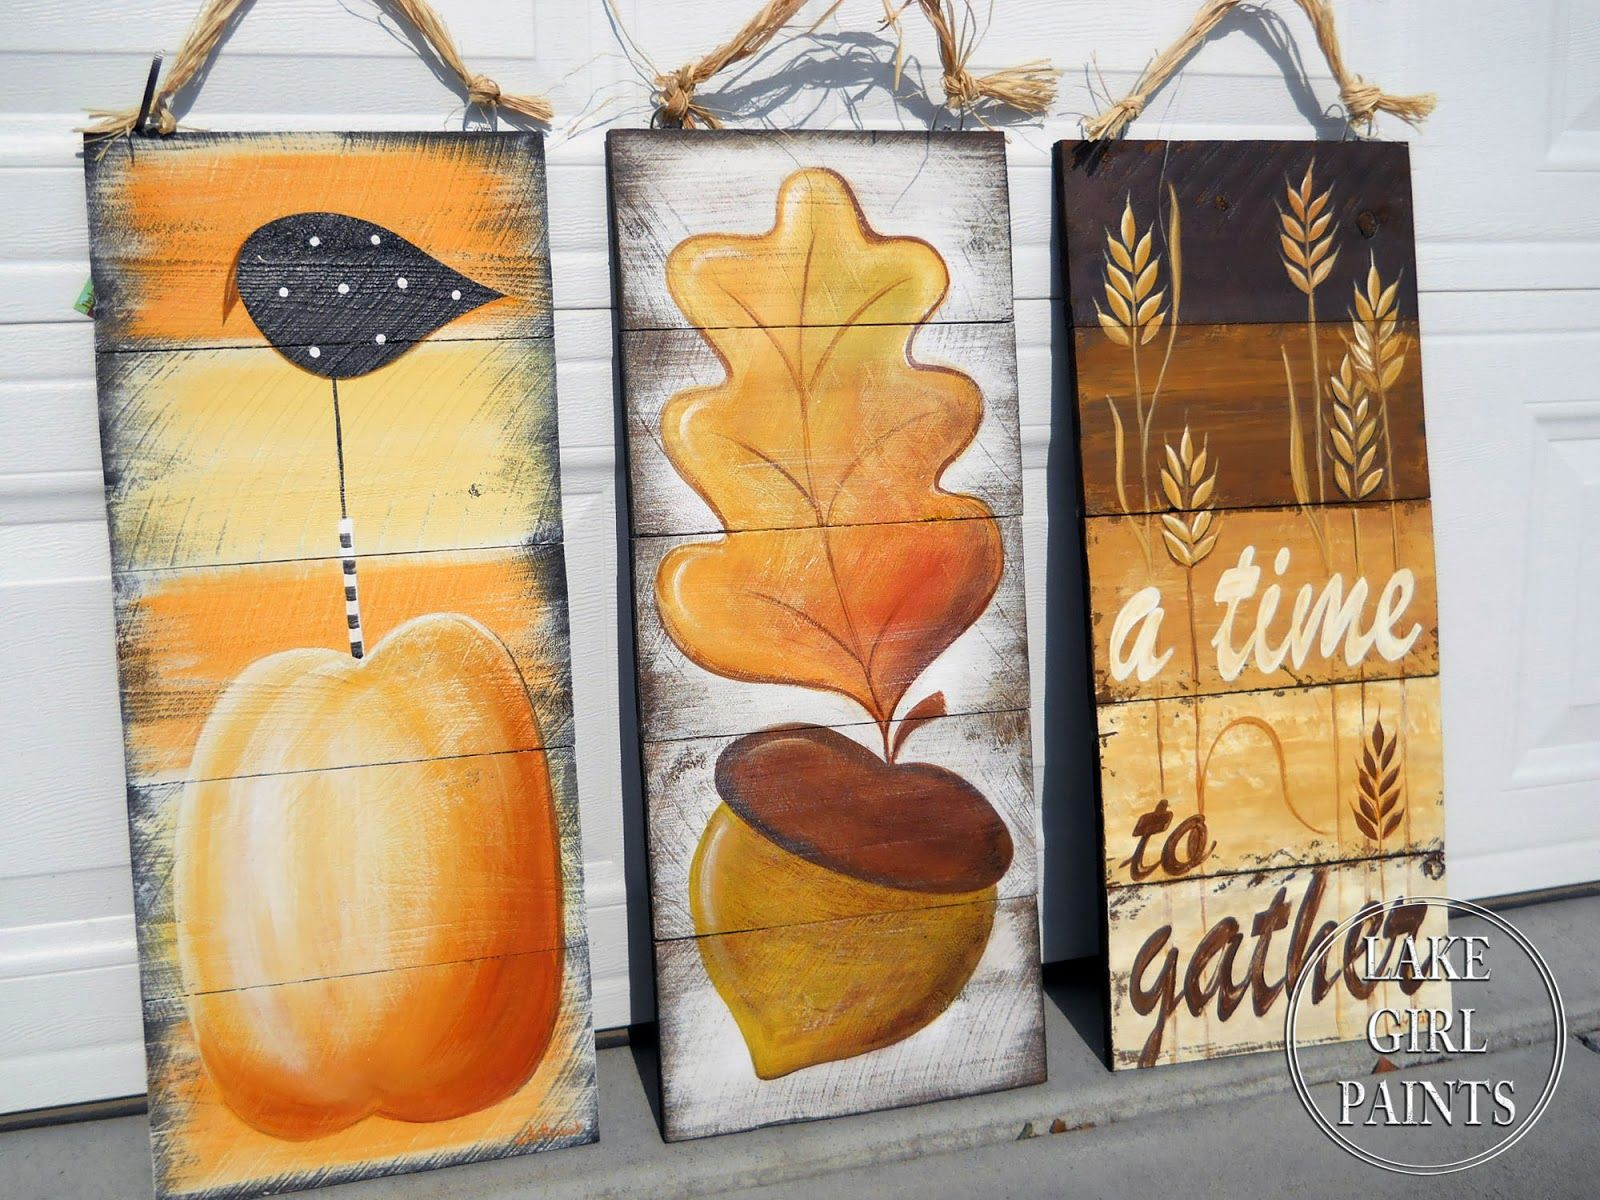 Lake Girl Paints: How to Paint Acorn and Autumn Leaf Art